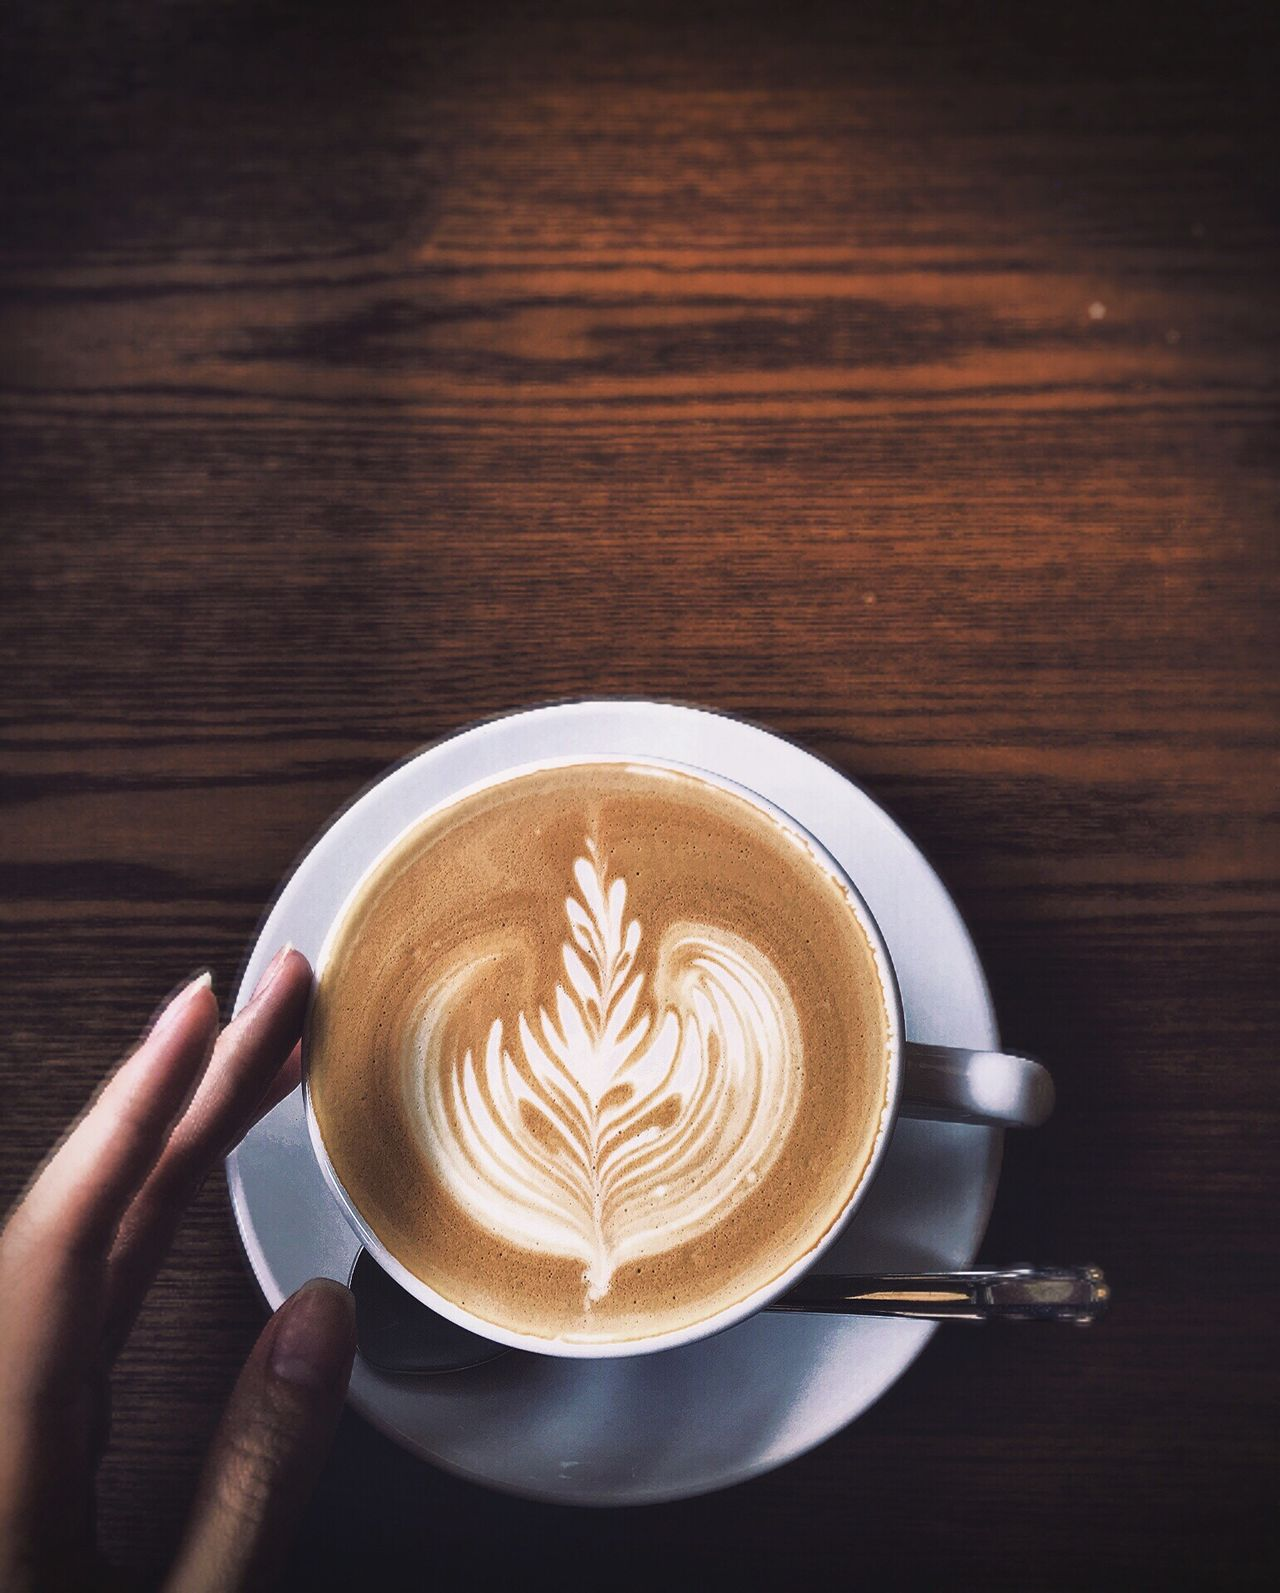 Beautiful stock photos of coffee, frothy drink, refreshment, drink, coffee - drink